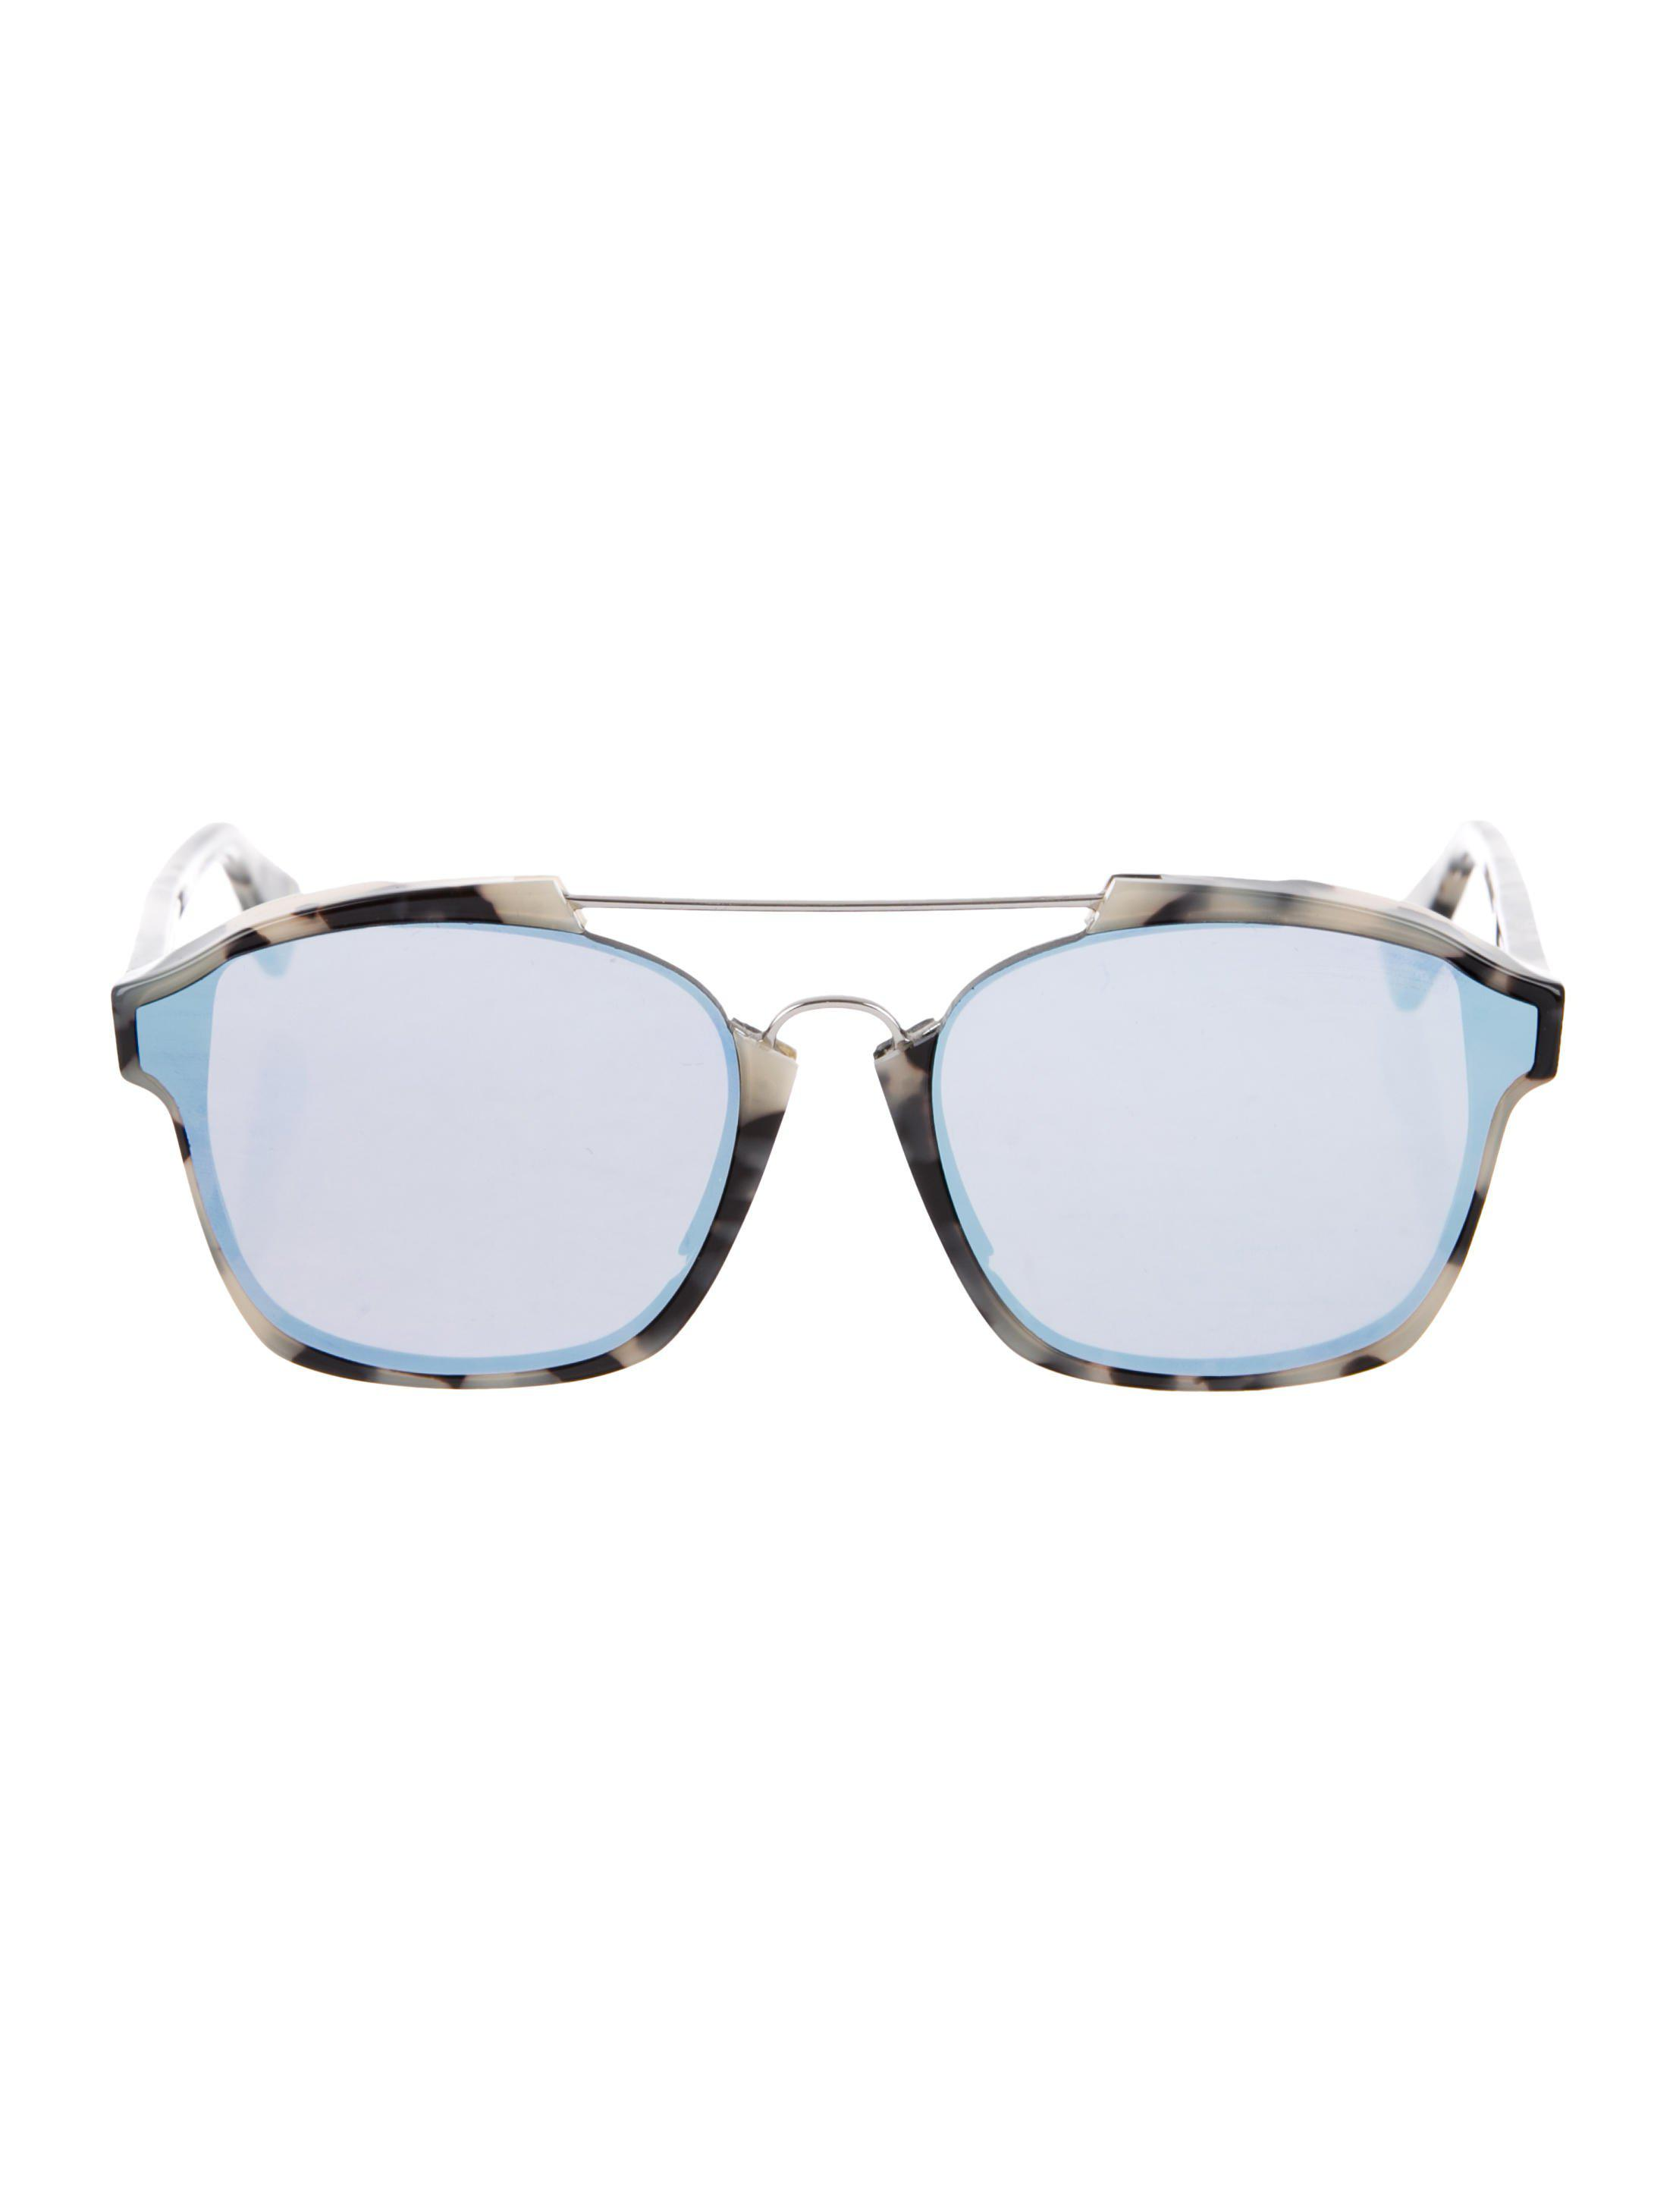 69274182a10 Lyst - Dior Abstract Mirrored Sunglasses Tan in Metallic